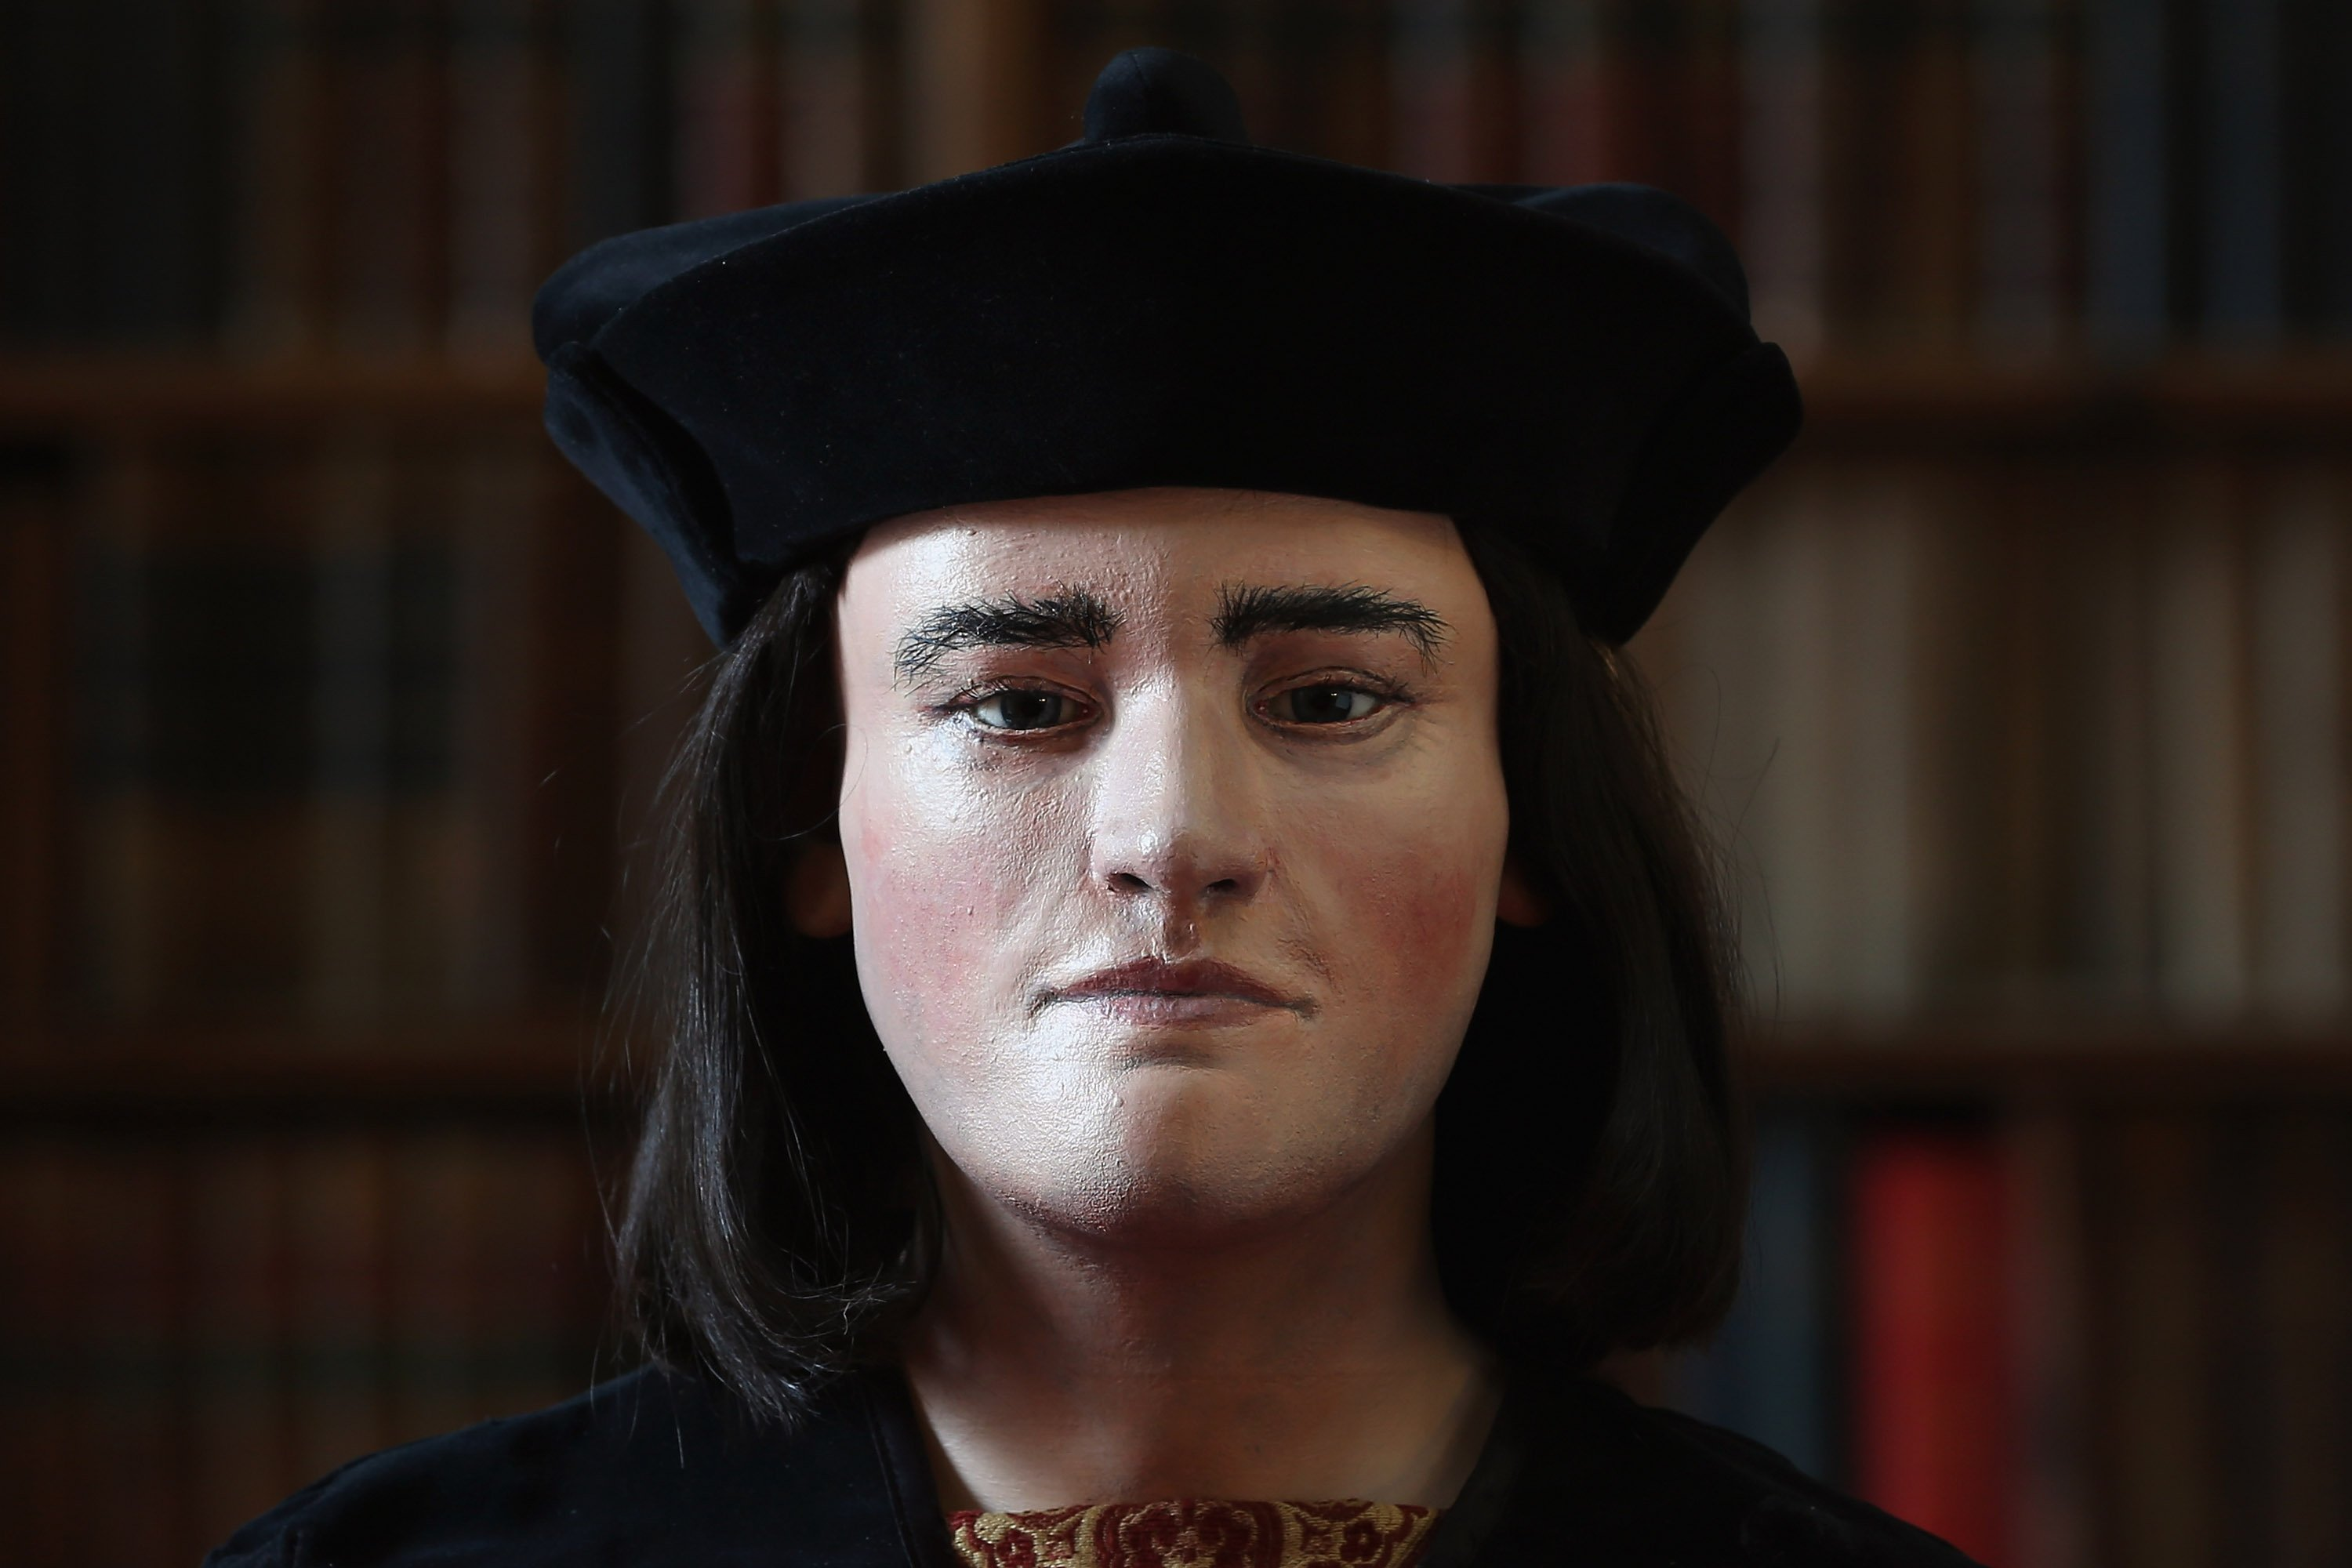 an analysis of the reasons for overthrowing richard iii a king of england This story is well known from shakespeare's play the tragedy of king richard iii and  the reasons for richard's  iii as duke of gloucester and king of england.